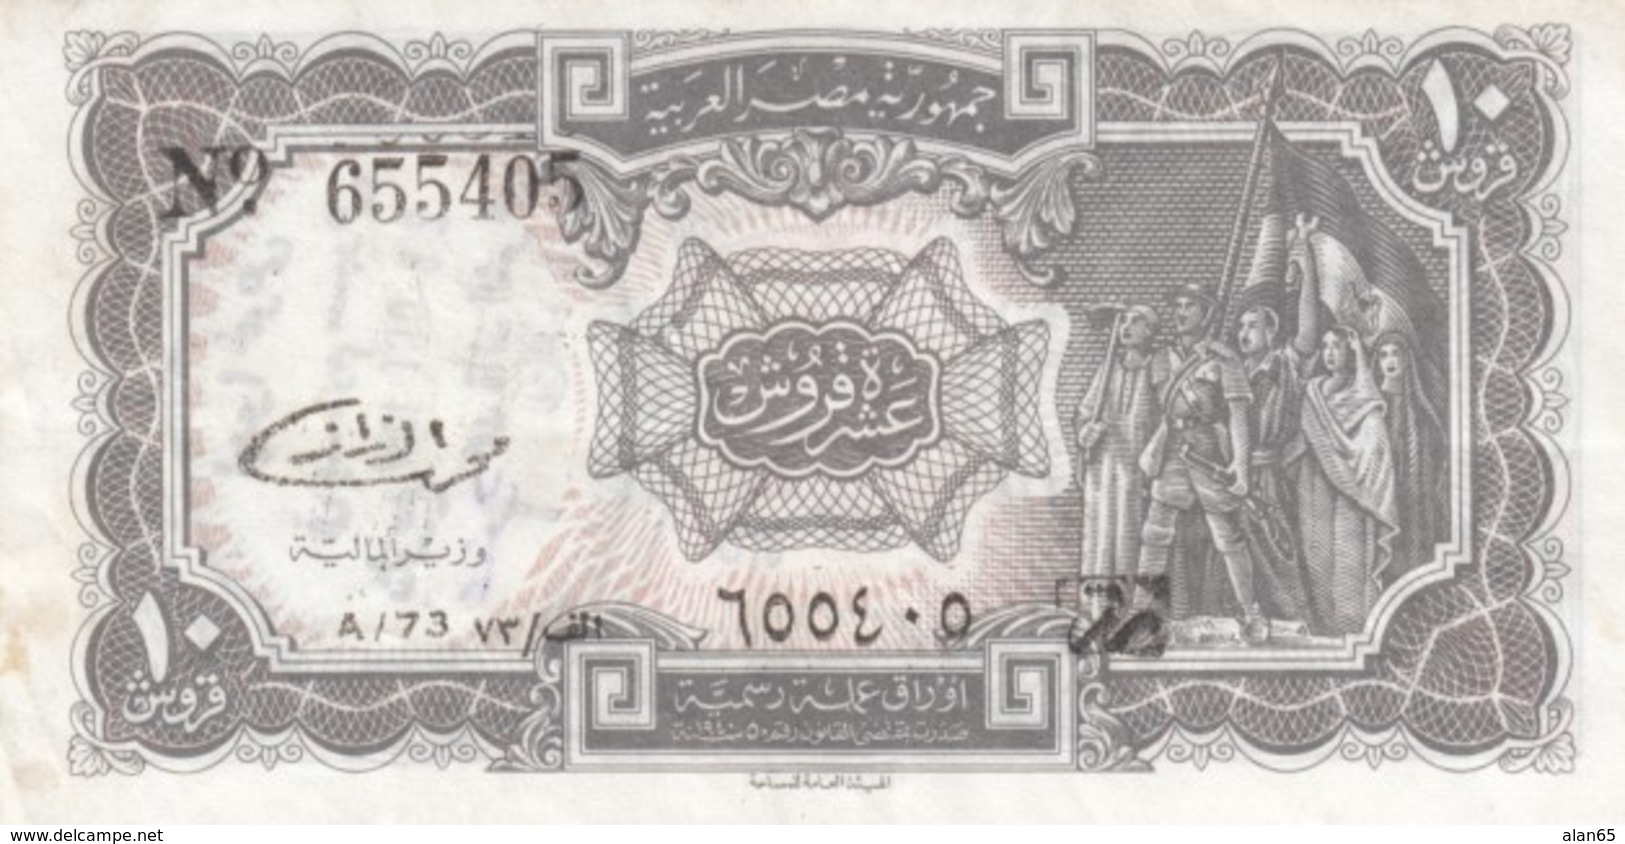 Egypt Banknote #184b 10 Piastres Series 73 1970s/80s Issue - Egypt